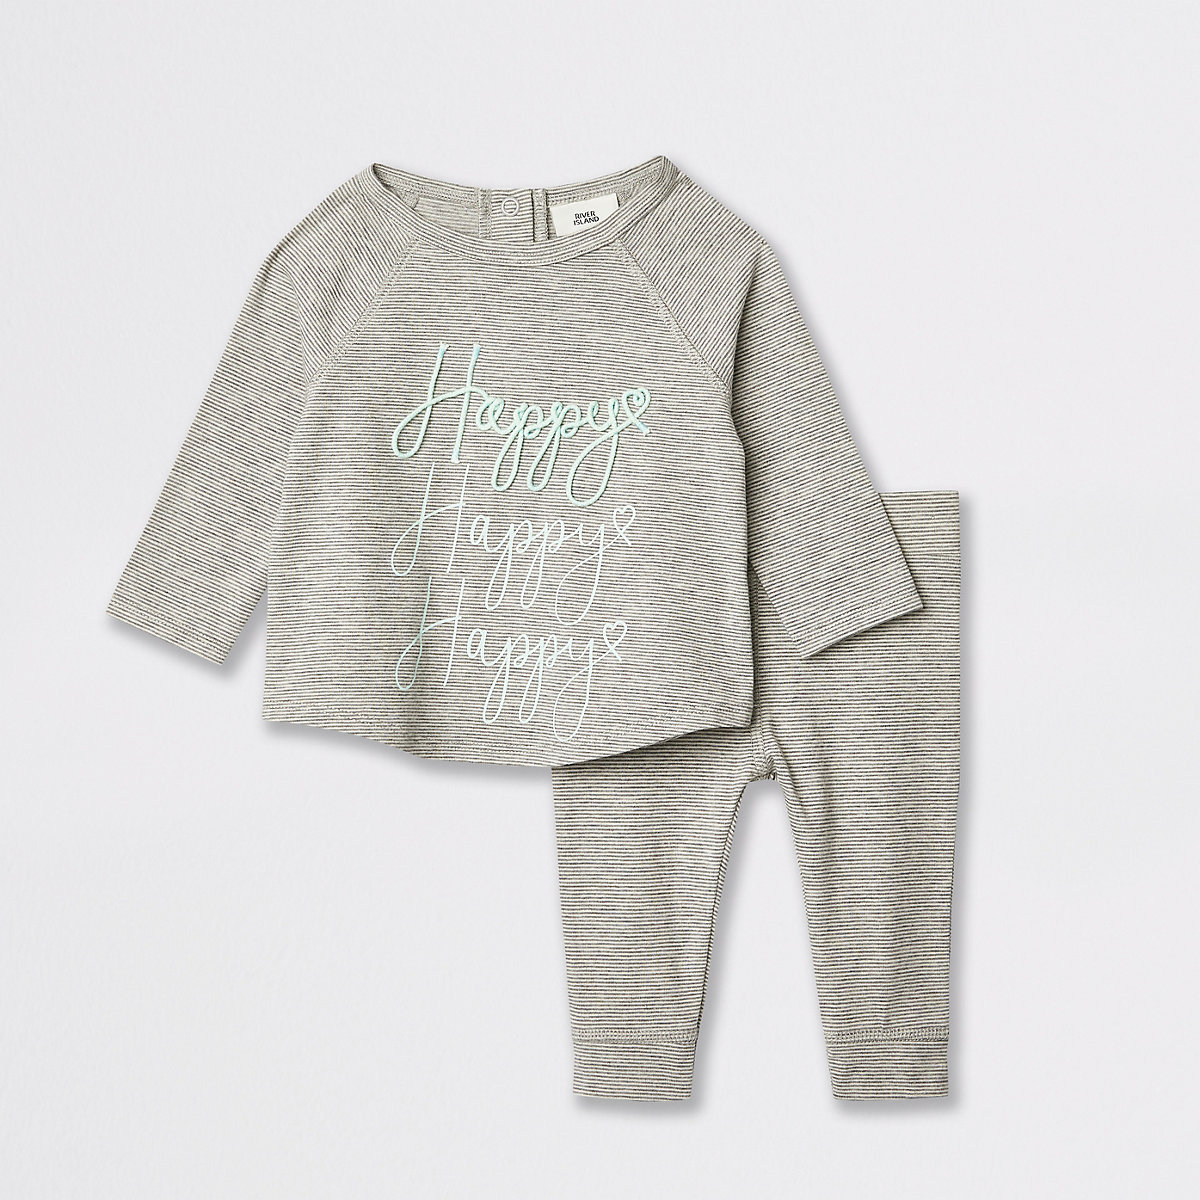 Baby grey stripe embroidered T-shirt outfit